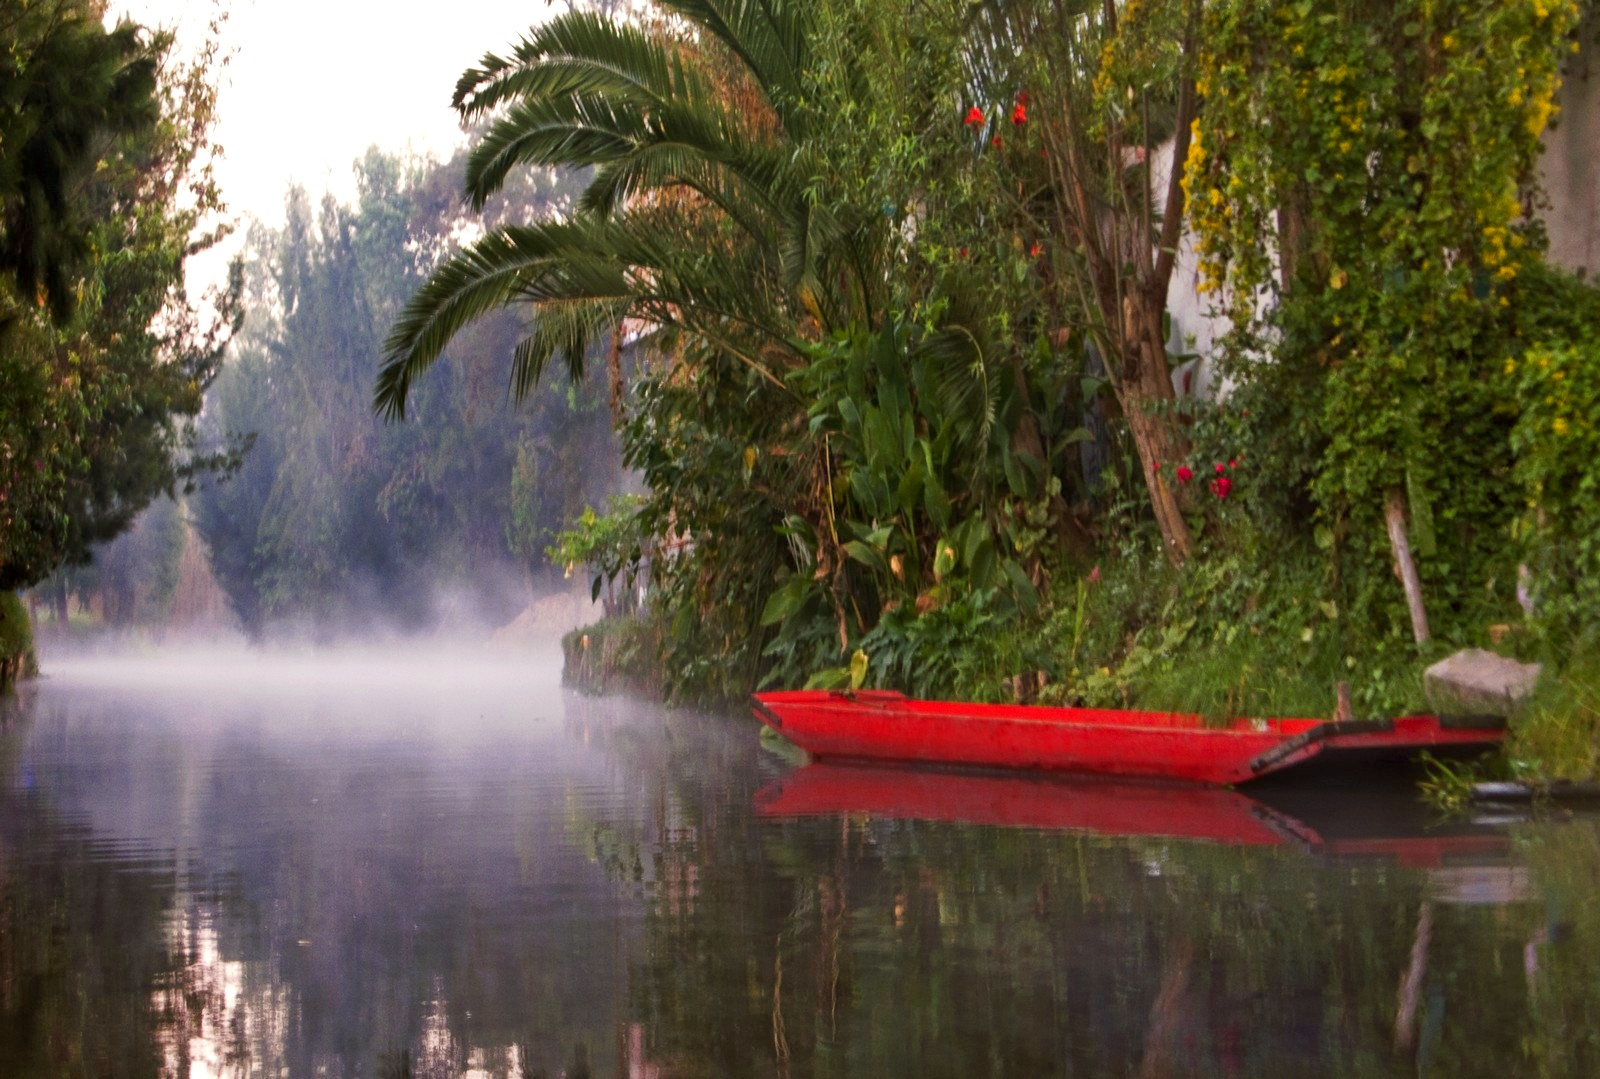 The stunning ancient canals of Mexico City's Xochimilco